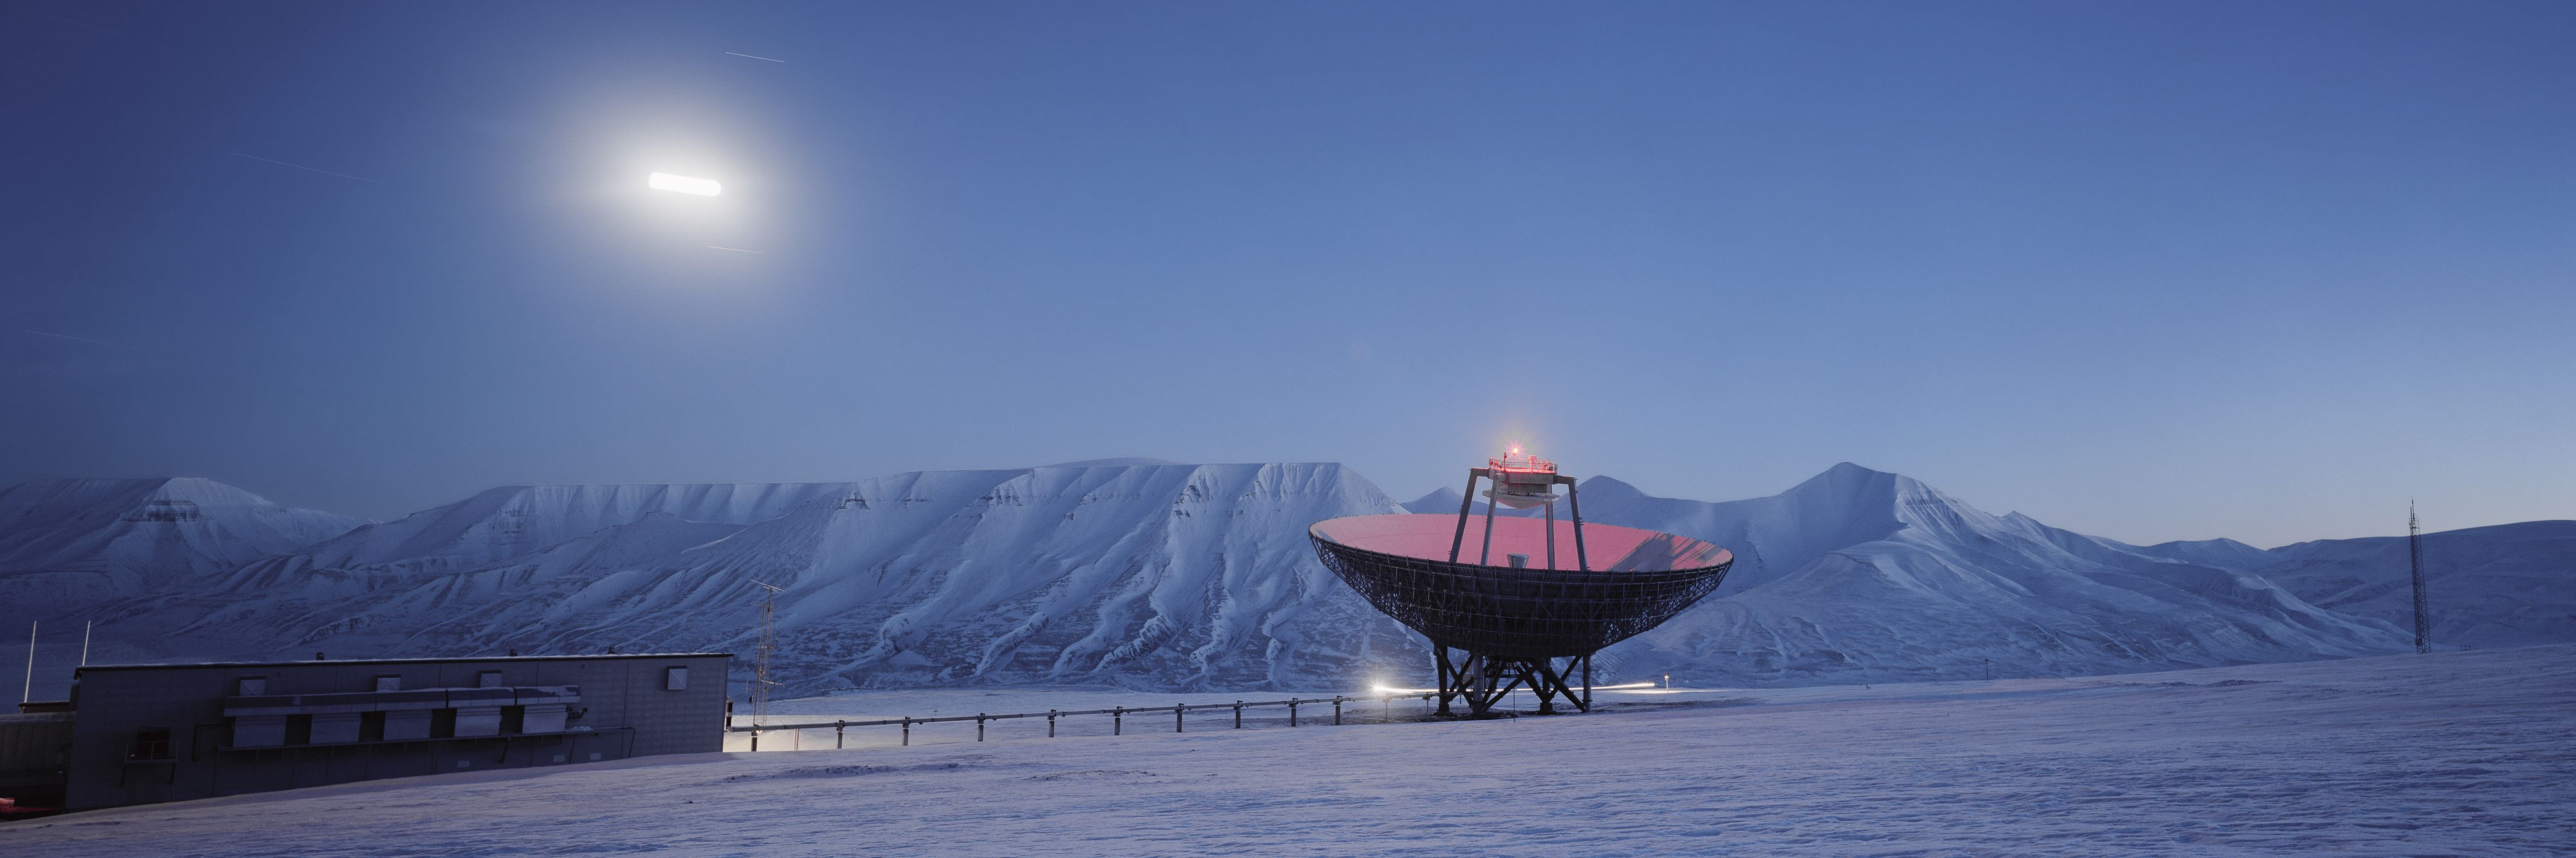 Dish in moonlight, Arctic Technology,Spitsbergen